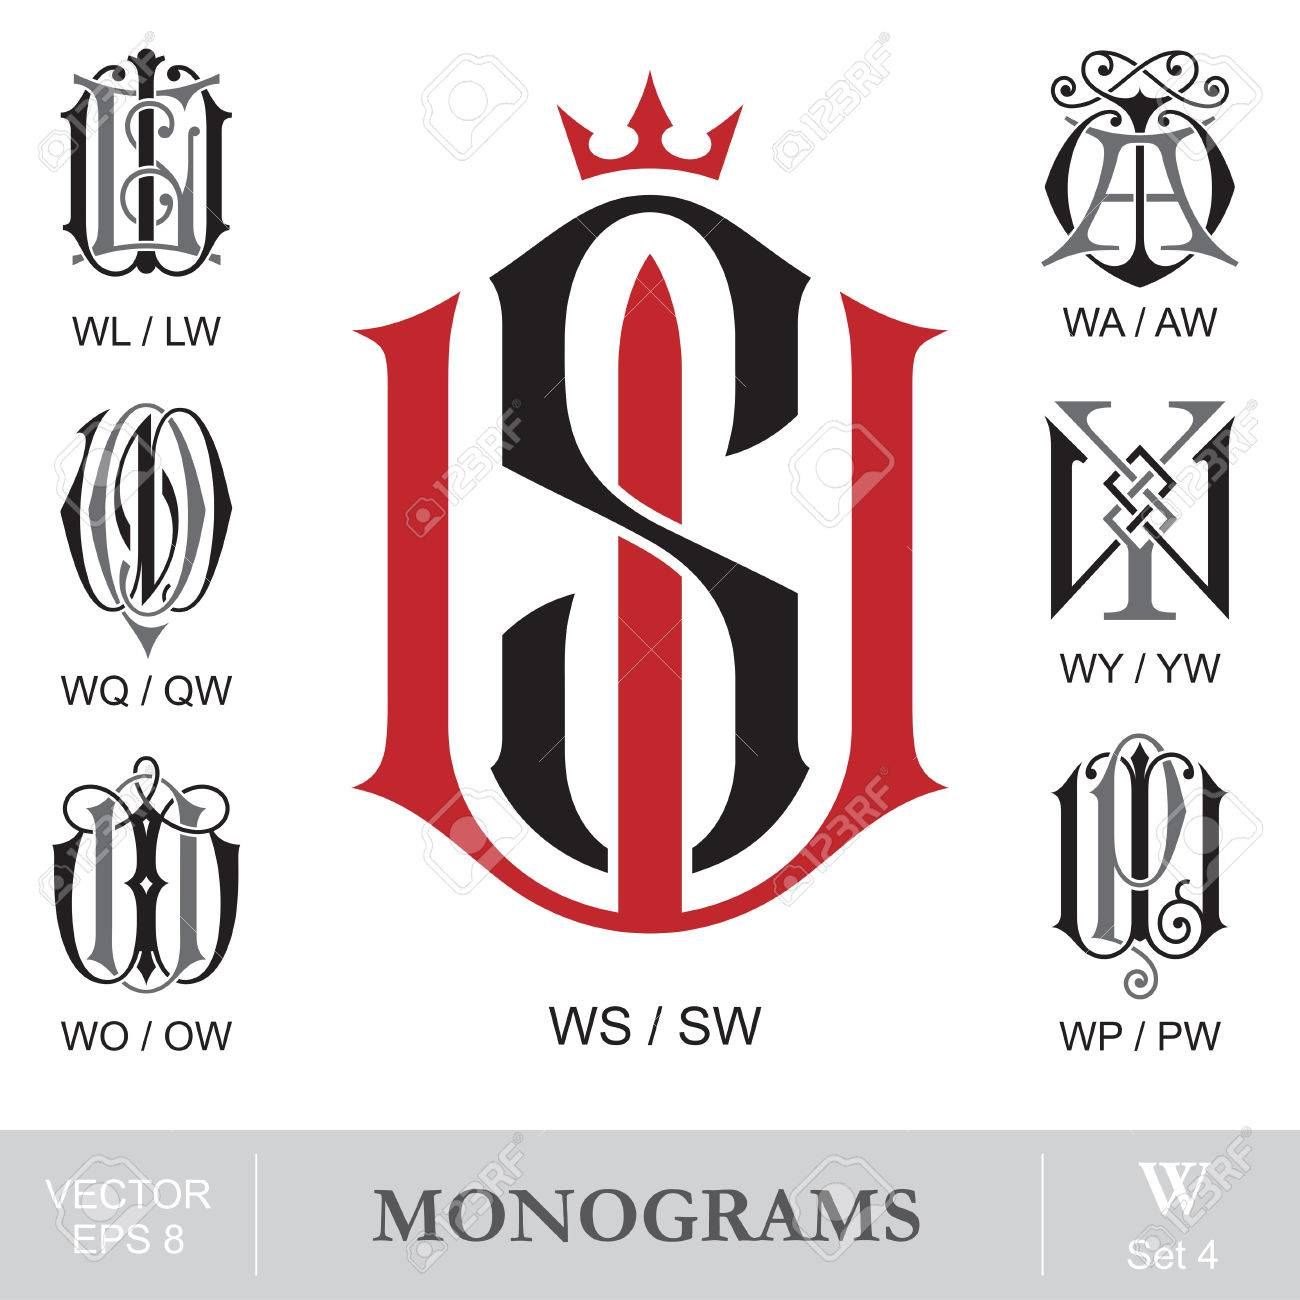 vintage monograms ws wl wa wq wy wo wp can also be sw lw aw qw